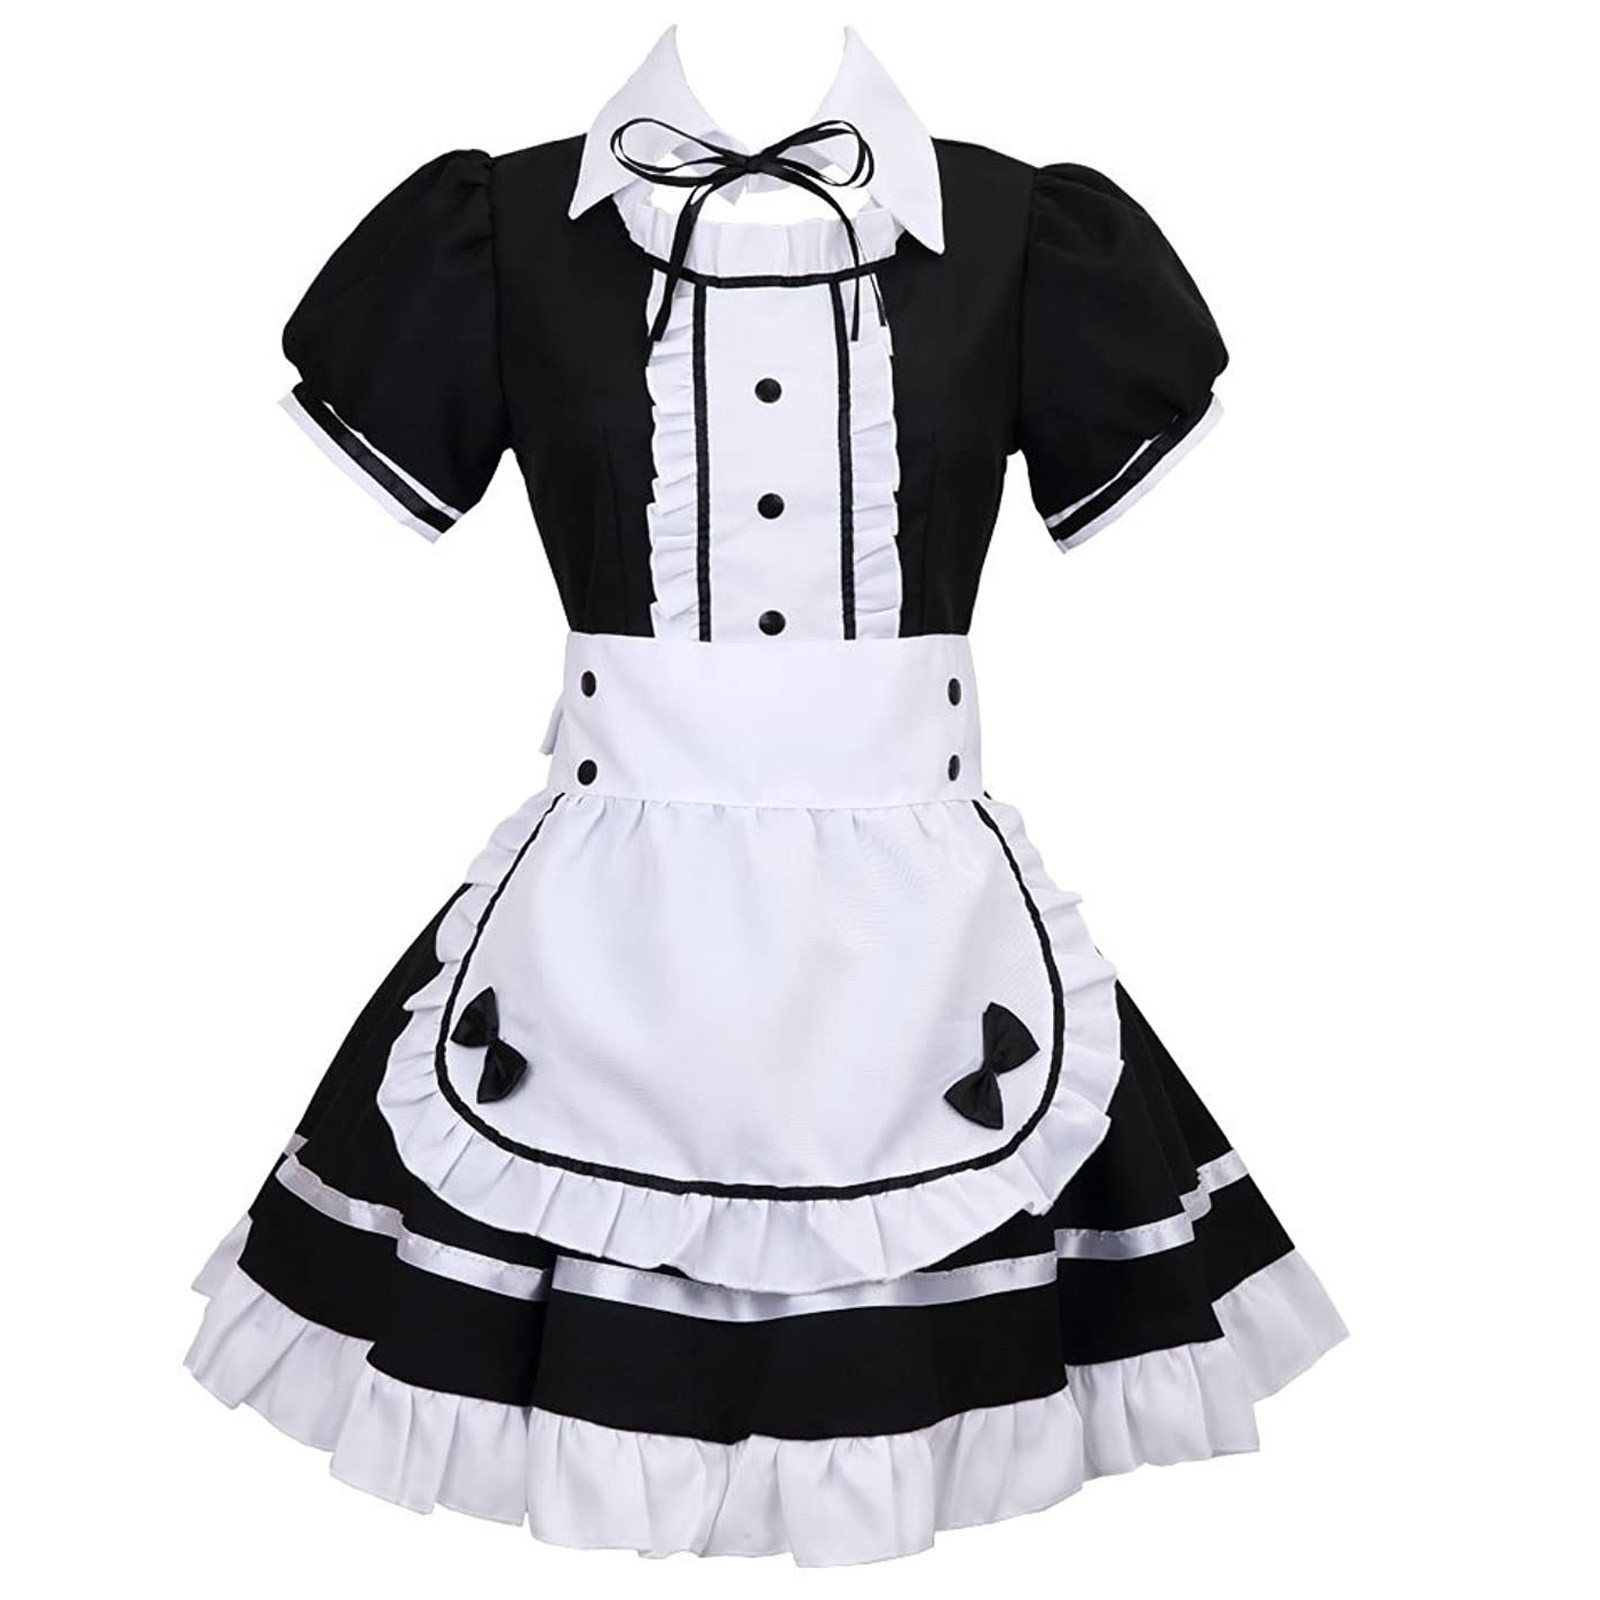 Apron Fake Collar Bowknot Dress Babydoll Underwear Clothes Underwear Maid Cosplay Dress Exotic Costume Women Headdress